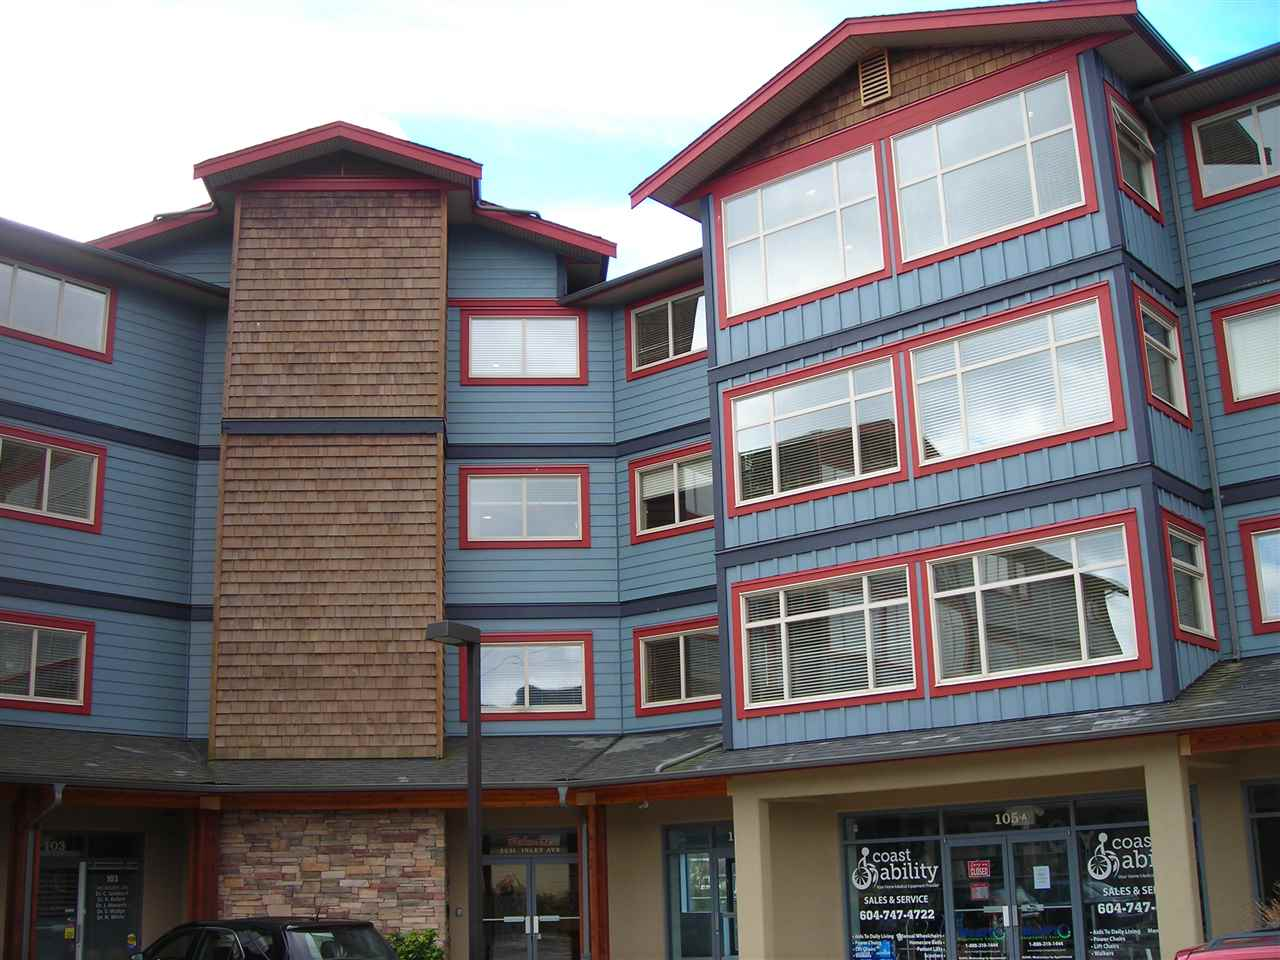 Main Photo: 406 5631 INLET Avenue in Sechelt: Sechelt District Condo for sale (Sunshine Coast)  : MLS® # R2118264